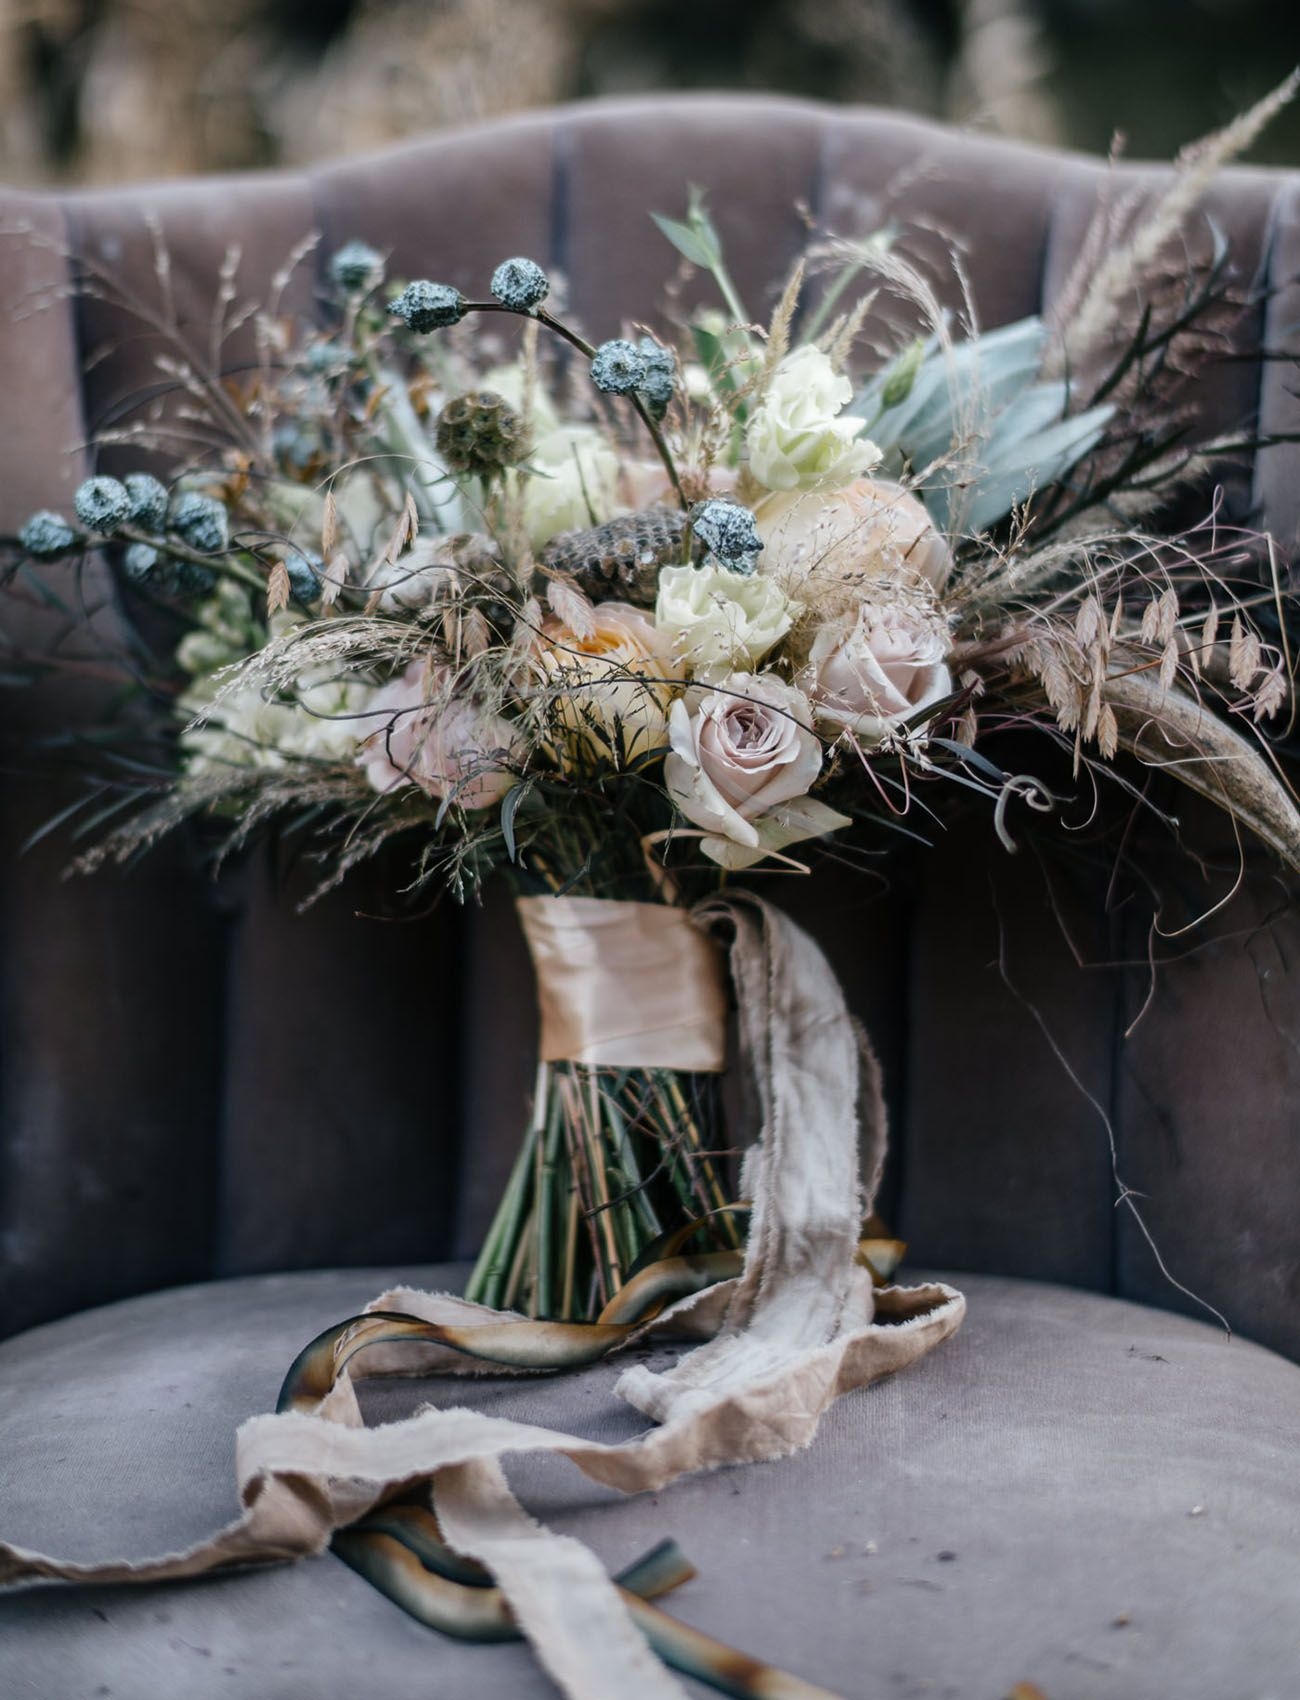 Dried flower bouquet with pastel hues and subdued colors of blue dried flower bouquet with pastel hues and subdued colors of blue pale peach light izmirmasajfo Images